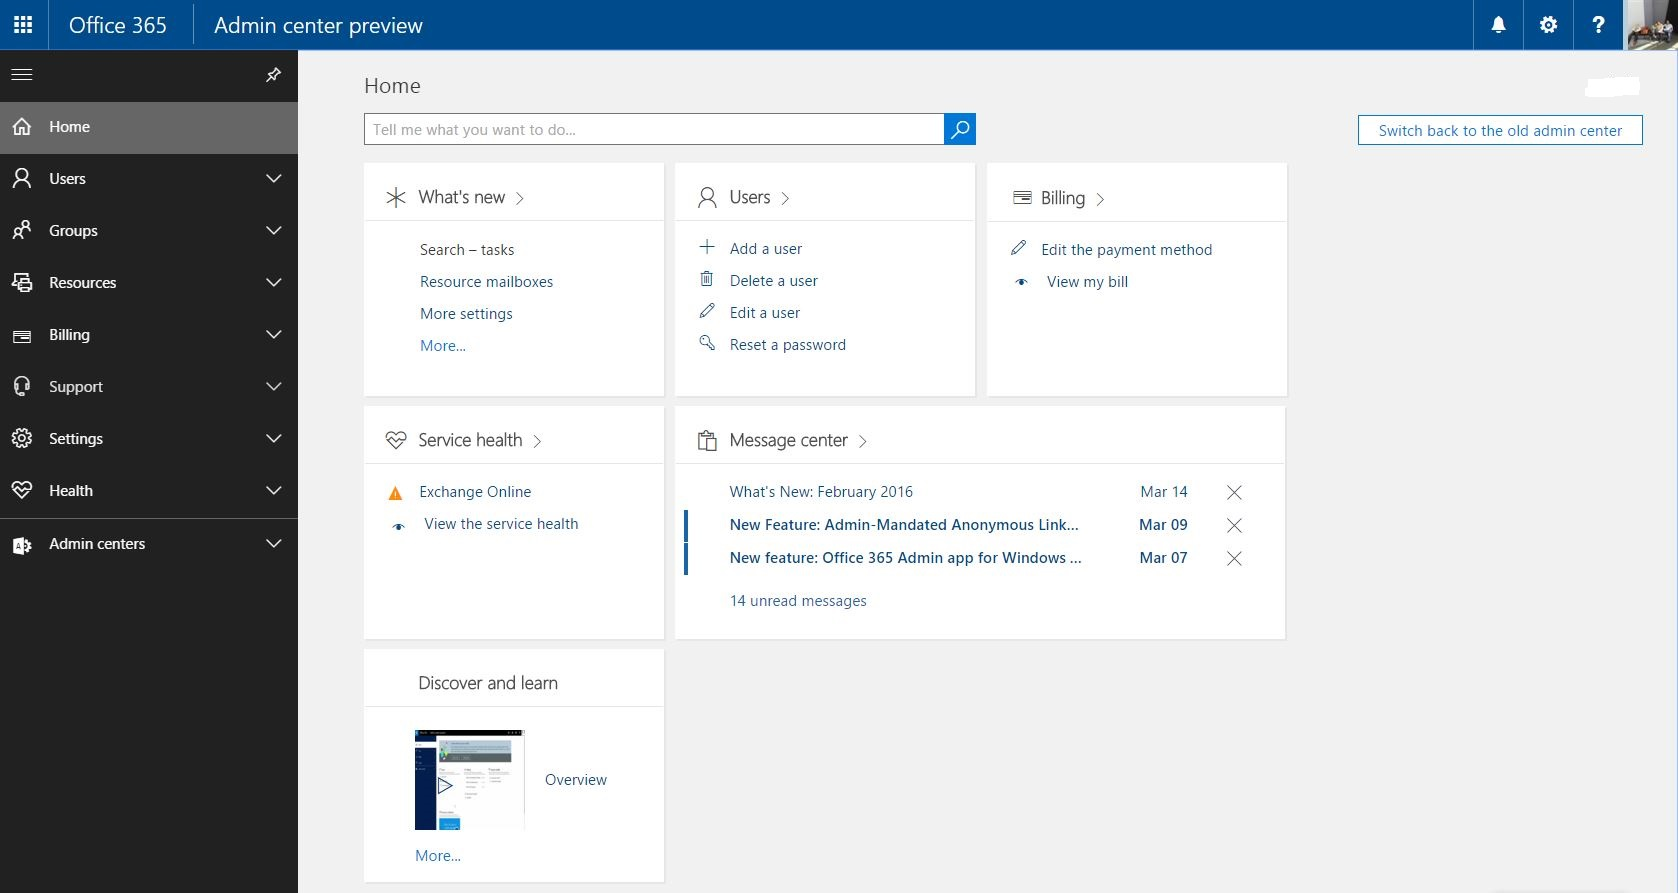 Office 365 Admin Center Preview